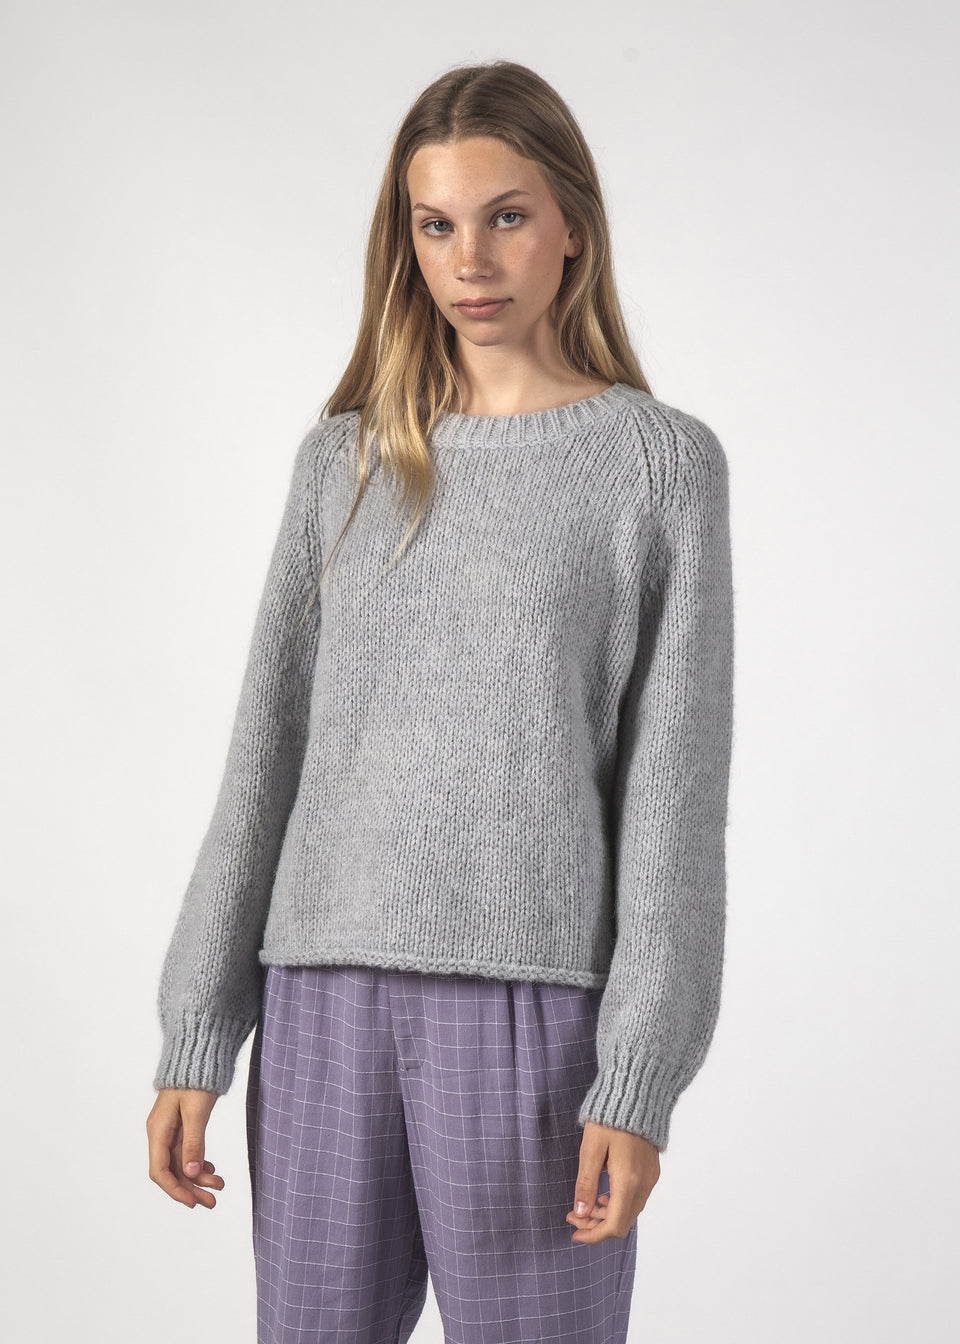 Thing Thing Milo Jumper Soft Grey - Stencil